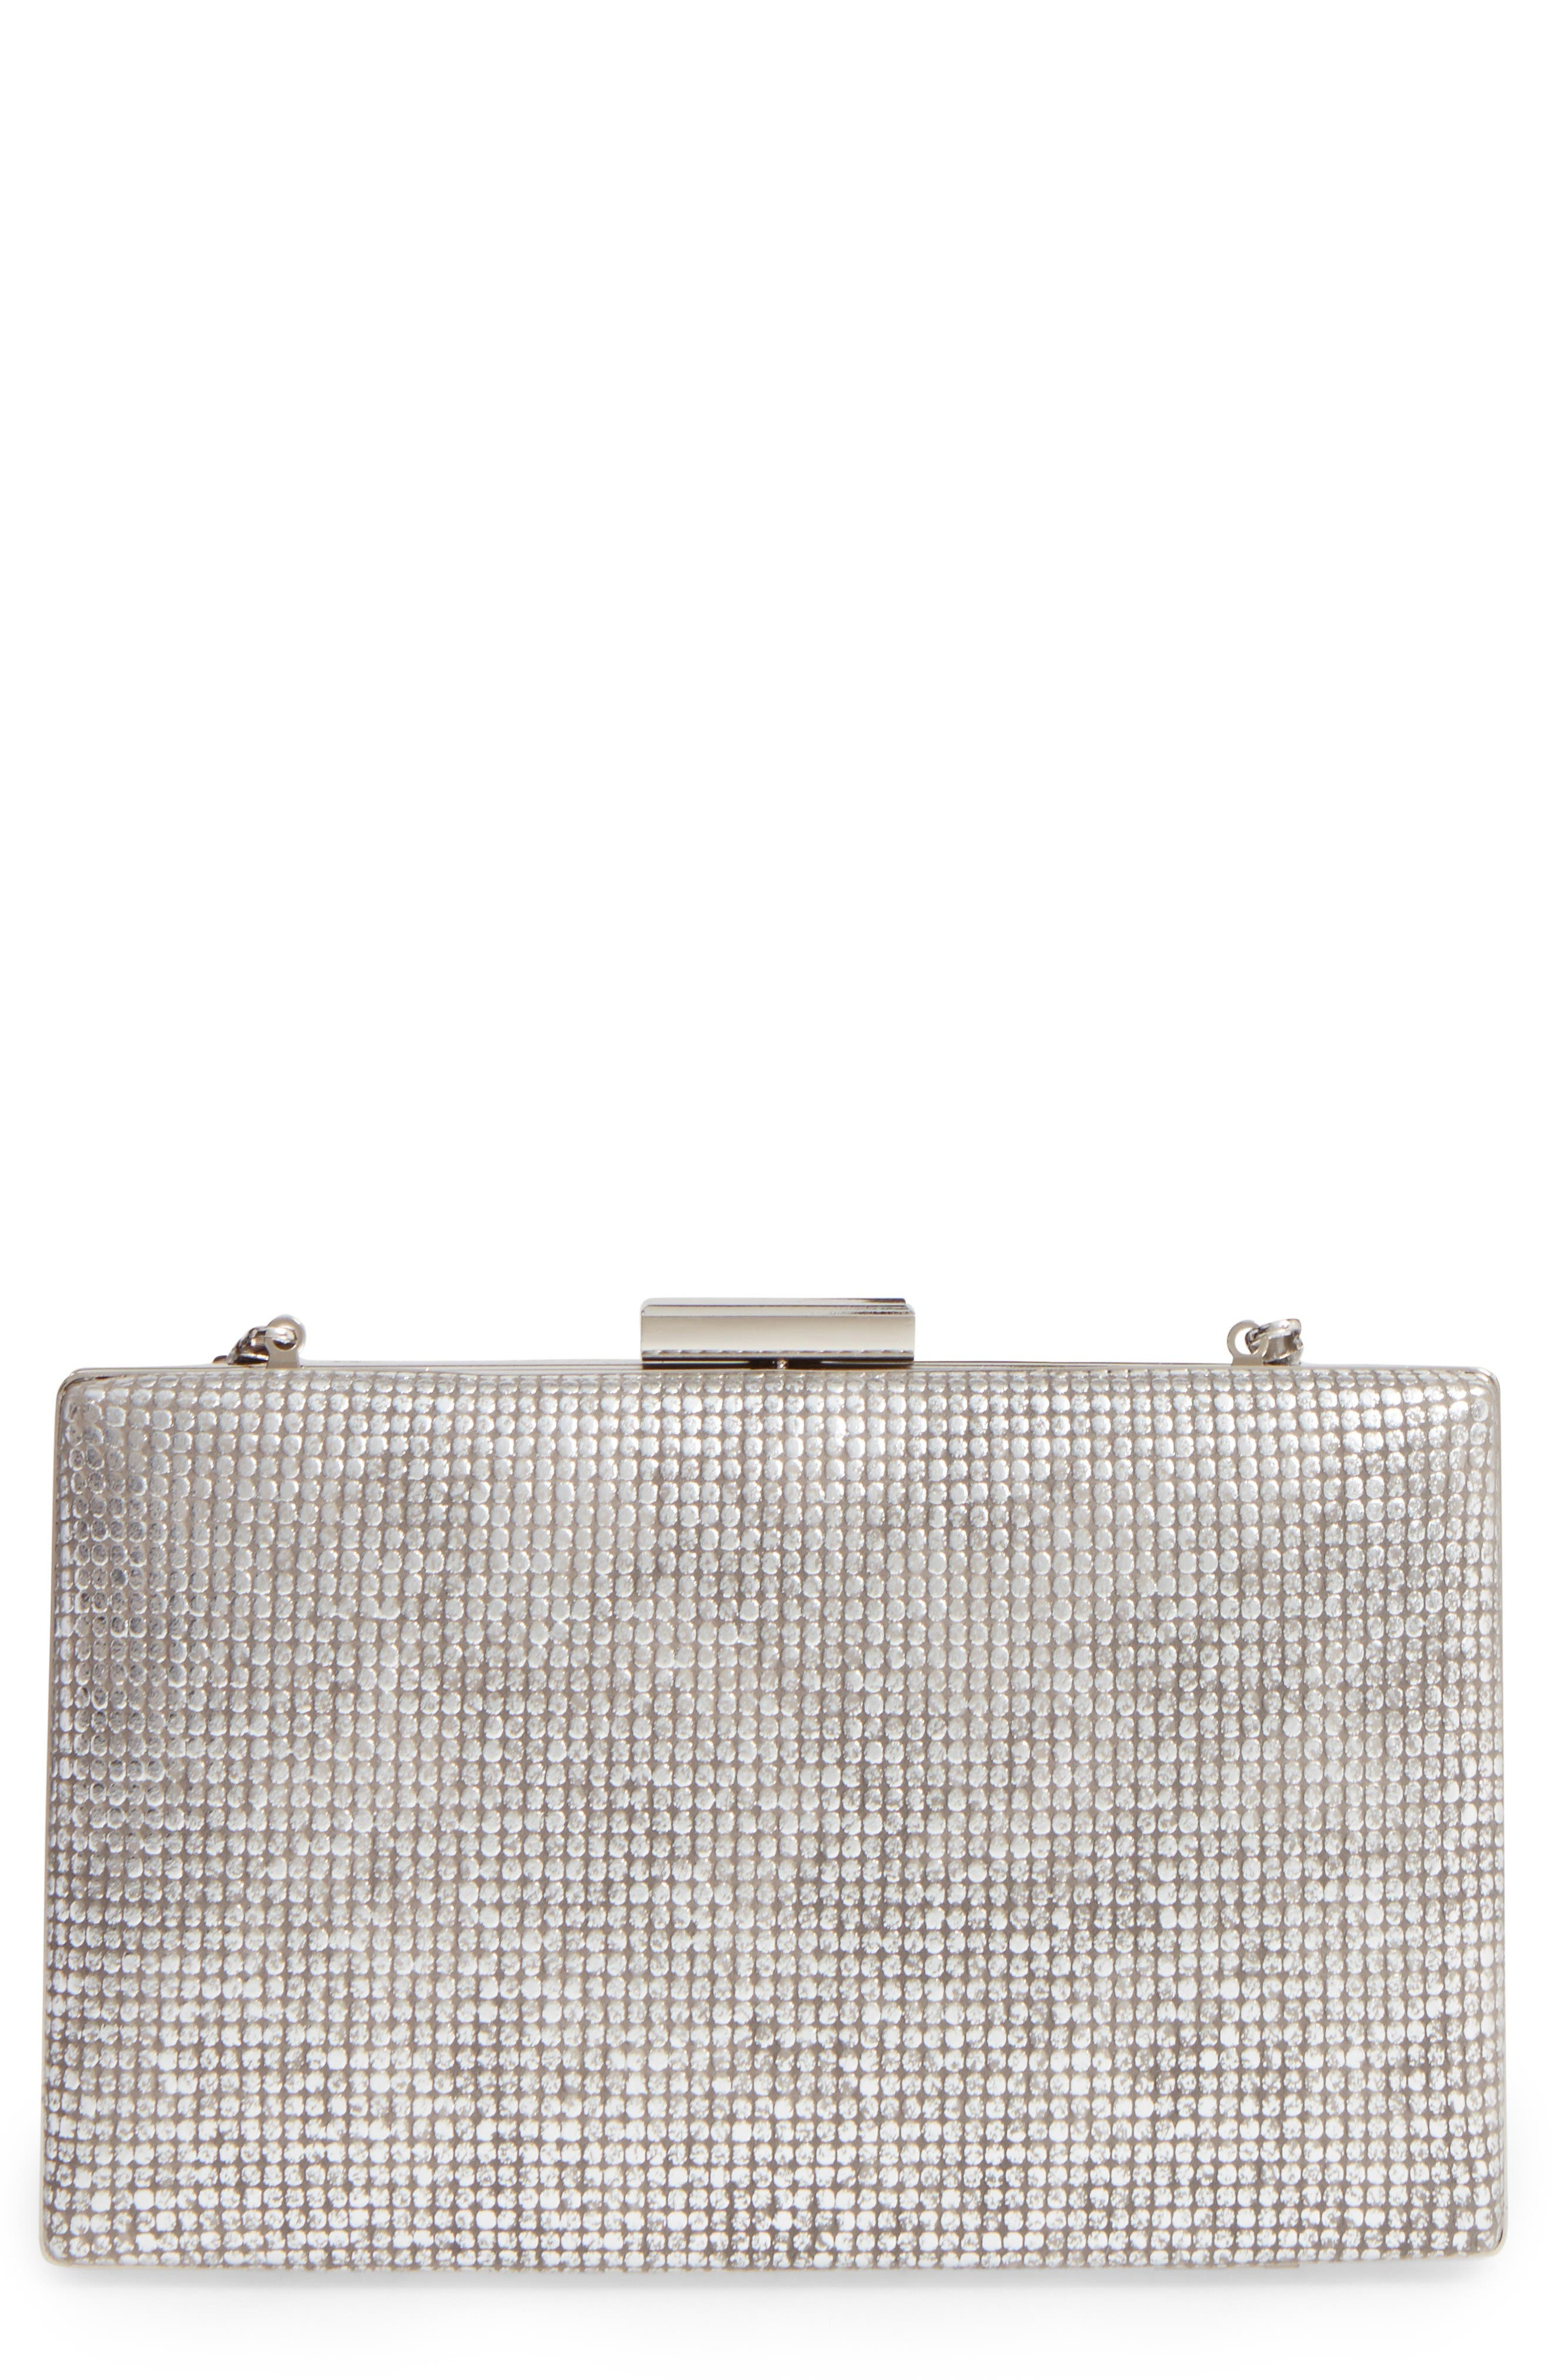 Alternate Image 1 Selected - Sondra Roberts Embossed Metallic Box Clutch